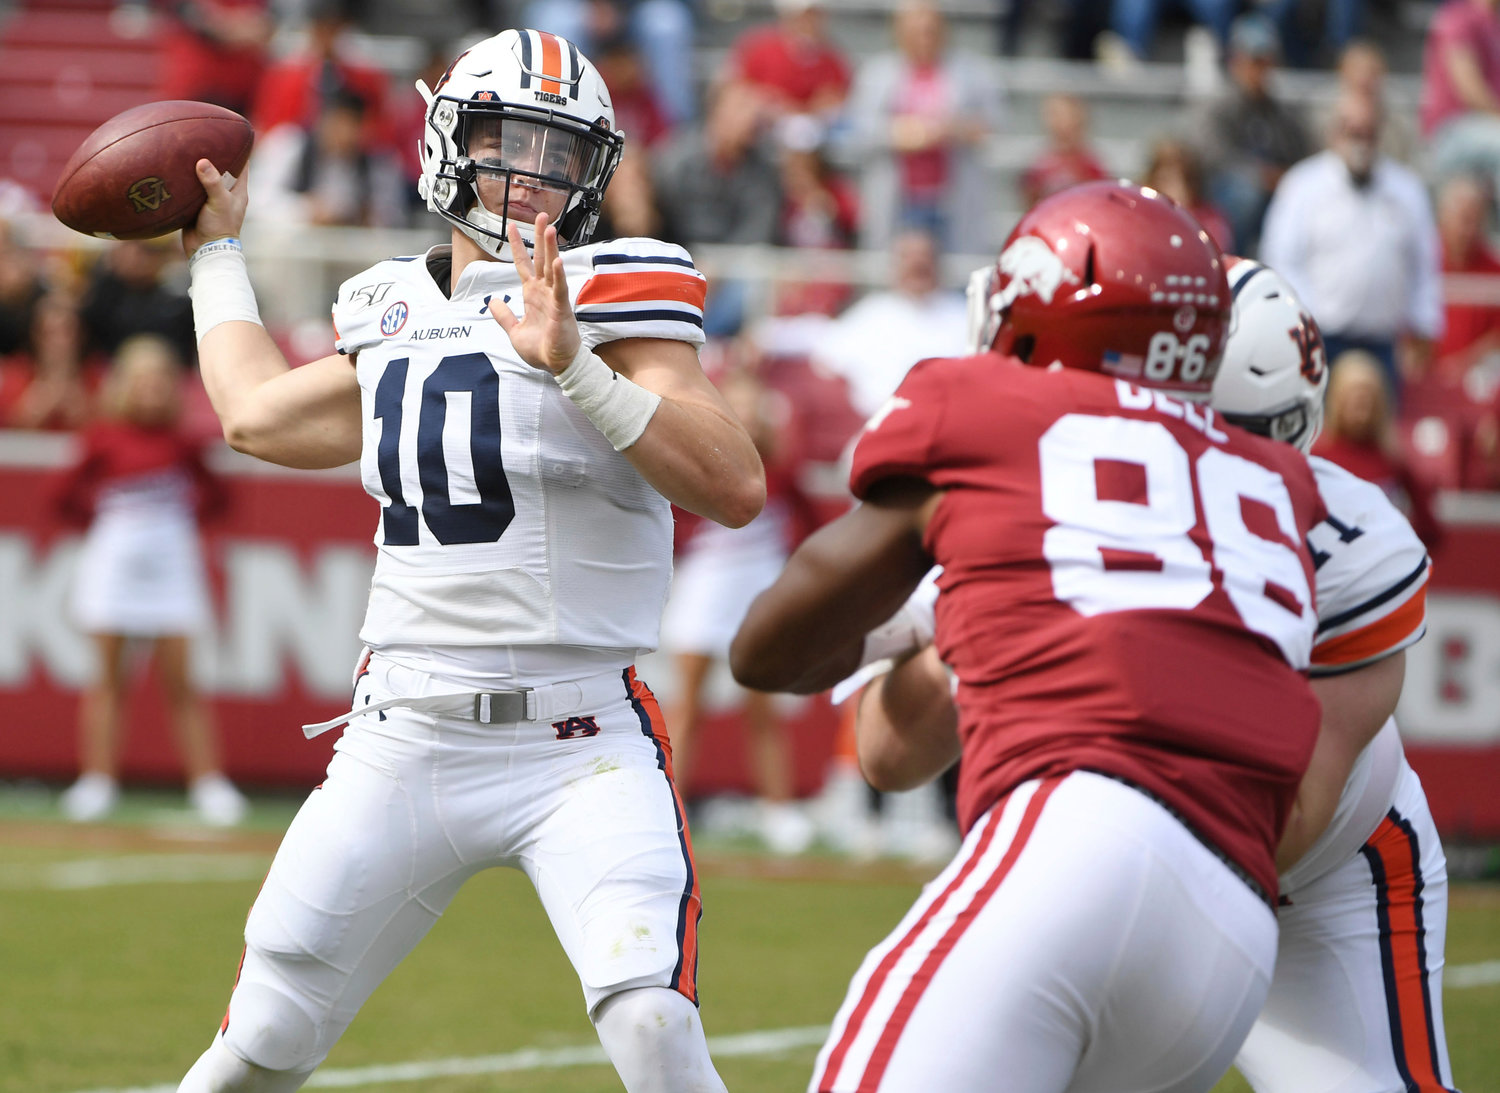 Auburn quarterback Bo Nix throws a pass against Arkansas during Saturday's game in Fayetteville, Ark. Nix threw three touchdown passes and rushed for another score in the Tigers' 51-10 win.